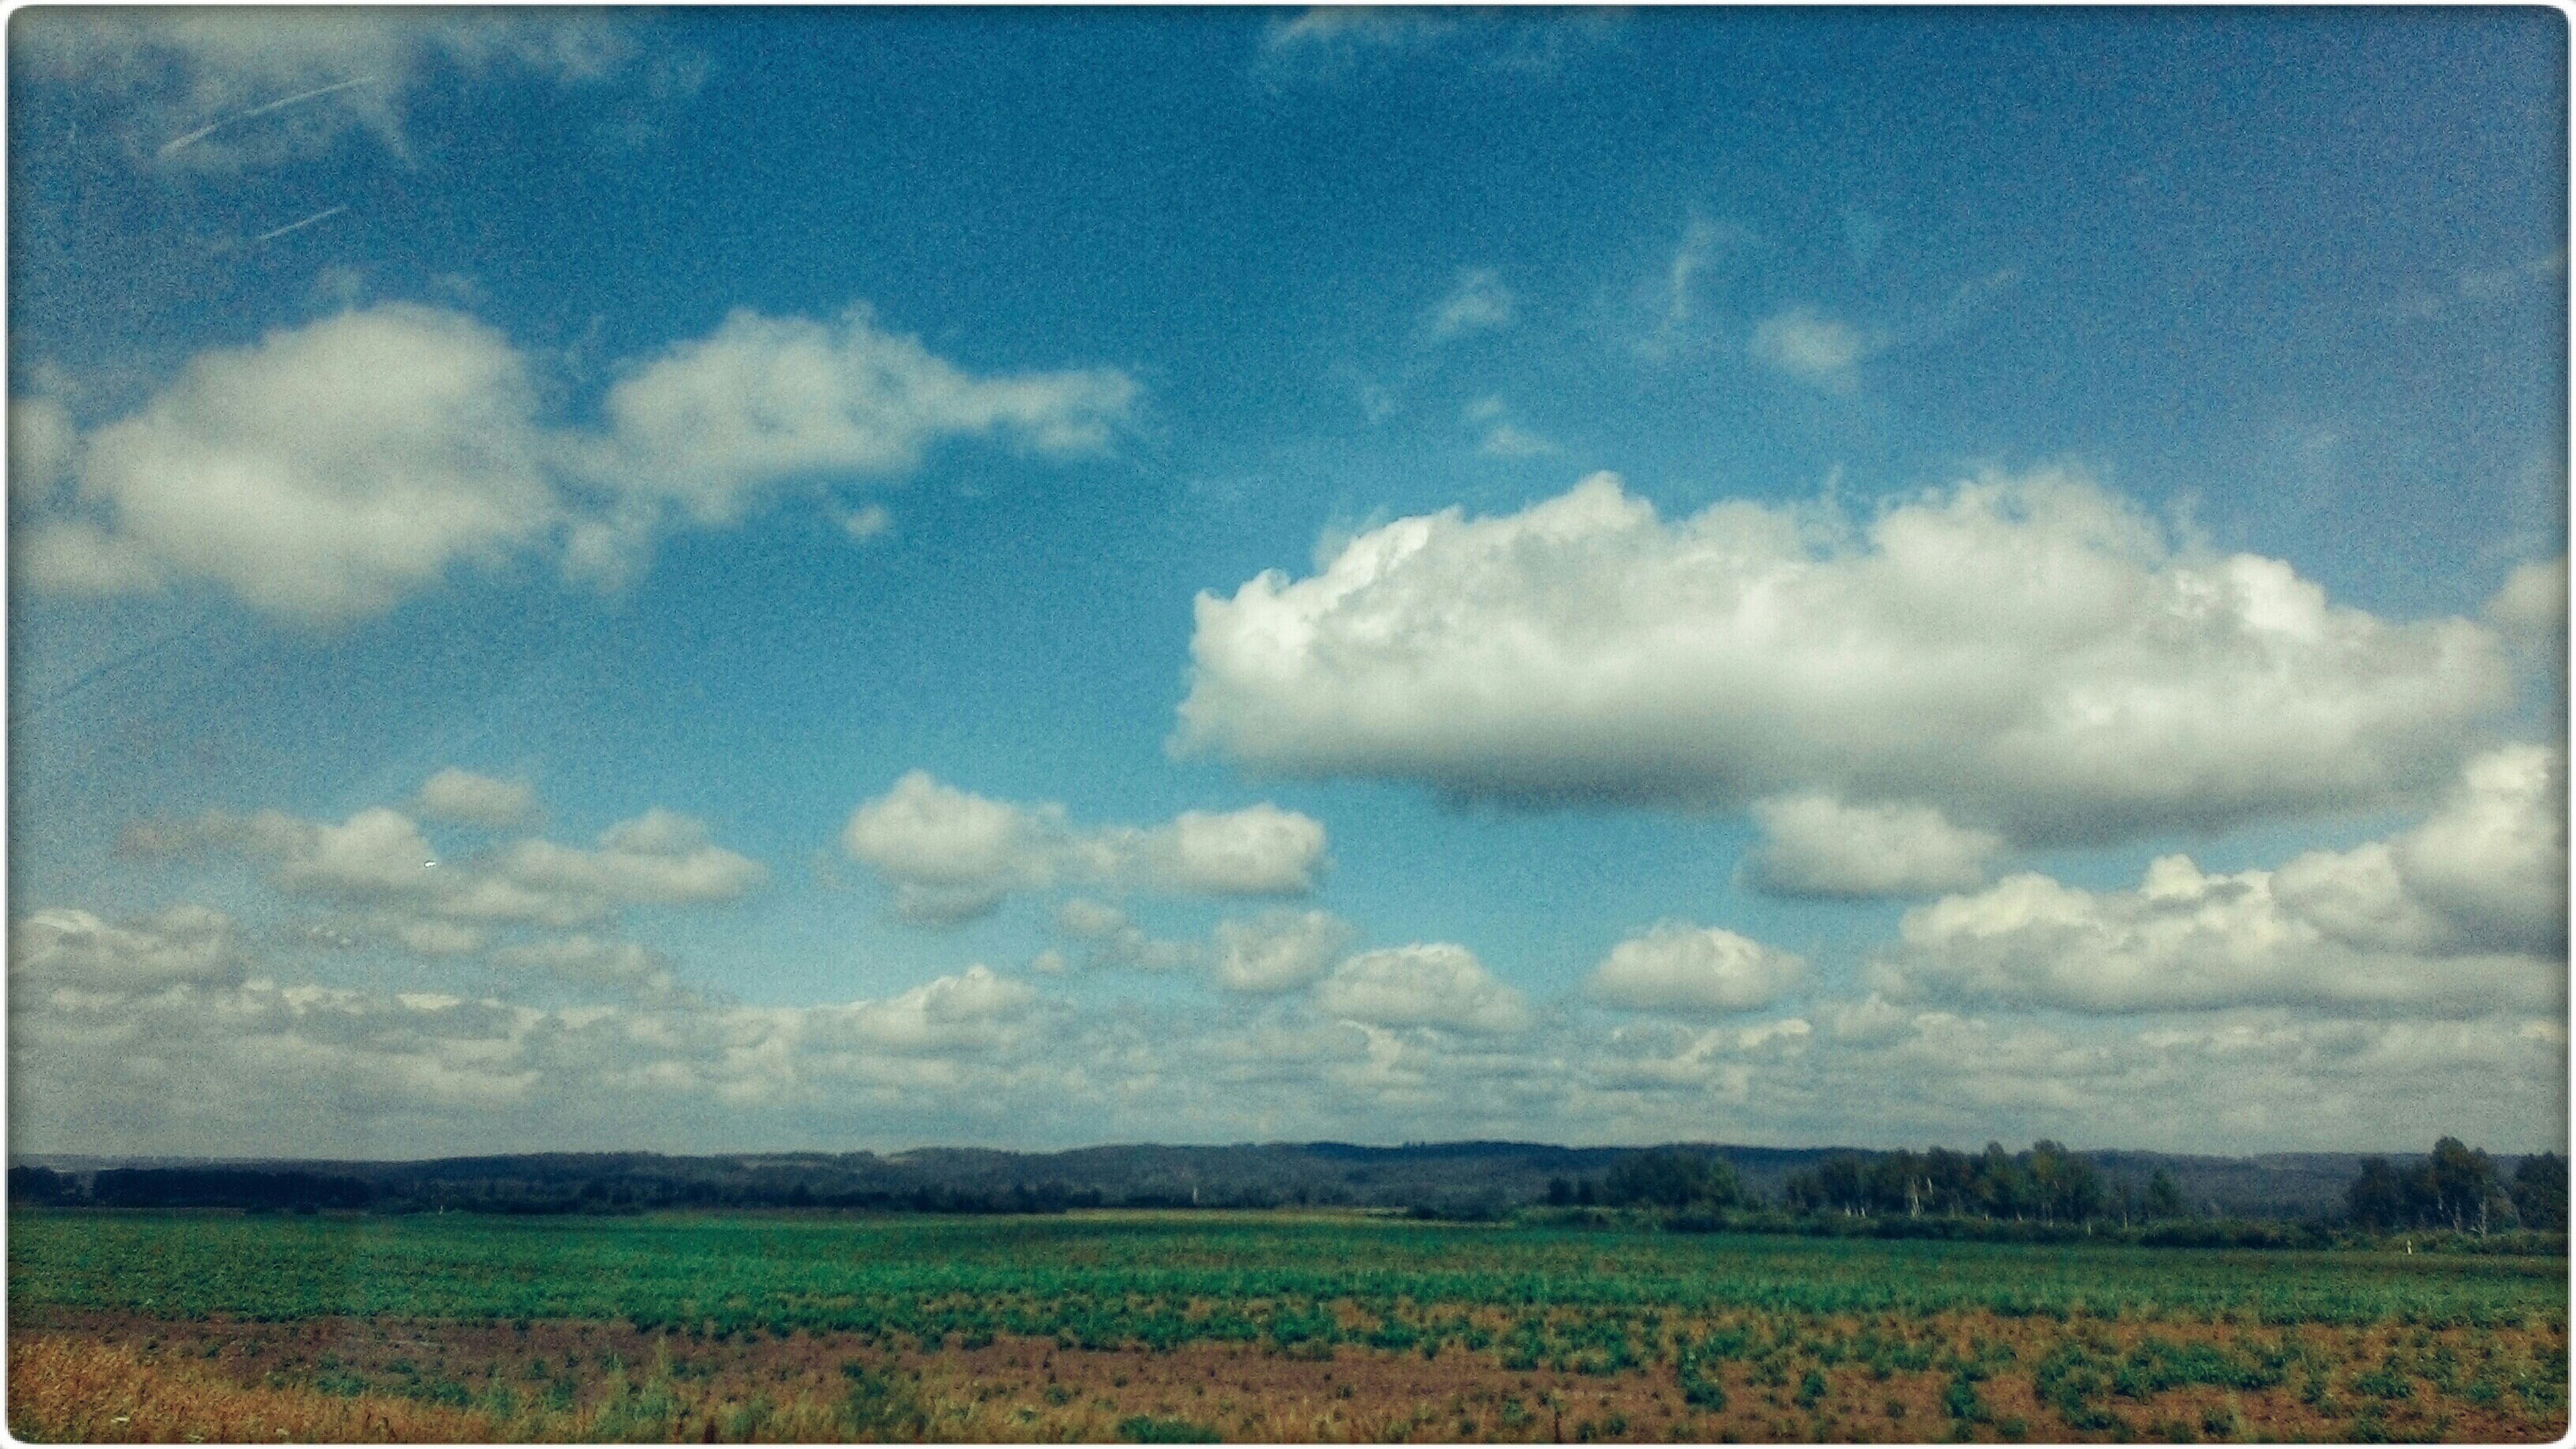 field, agriculture, landscape, sky, rural scene, tranquil scene, tranquility, farm, beauty in nature, scenics, nature, growth, crop, cloud - sky, grass, cloud, horizon over land, cultivated land, cloudy, outdoors